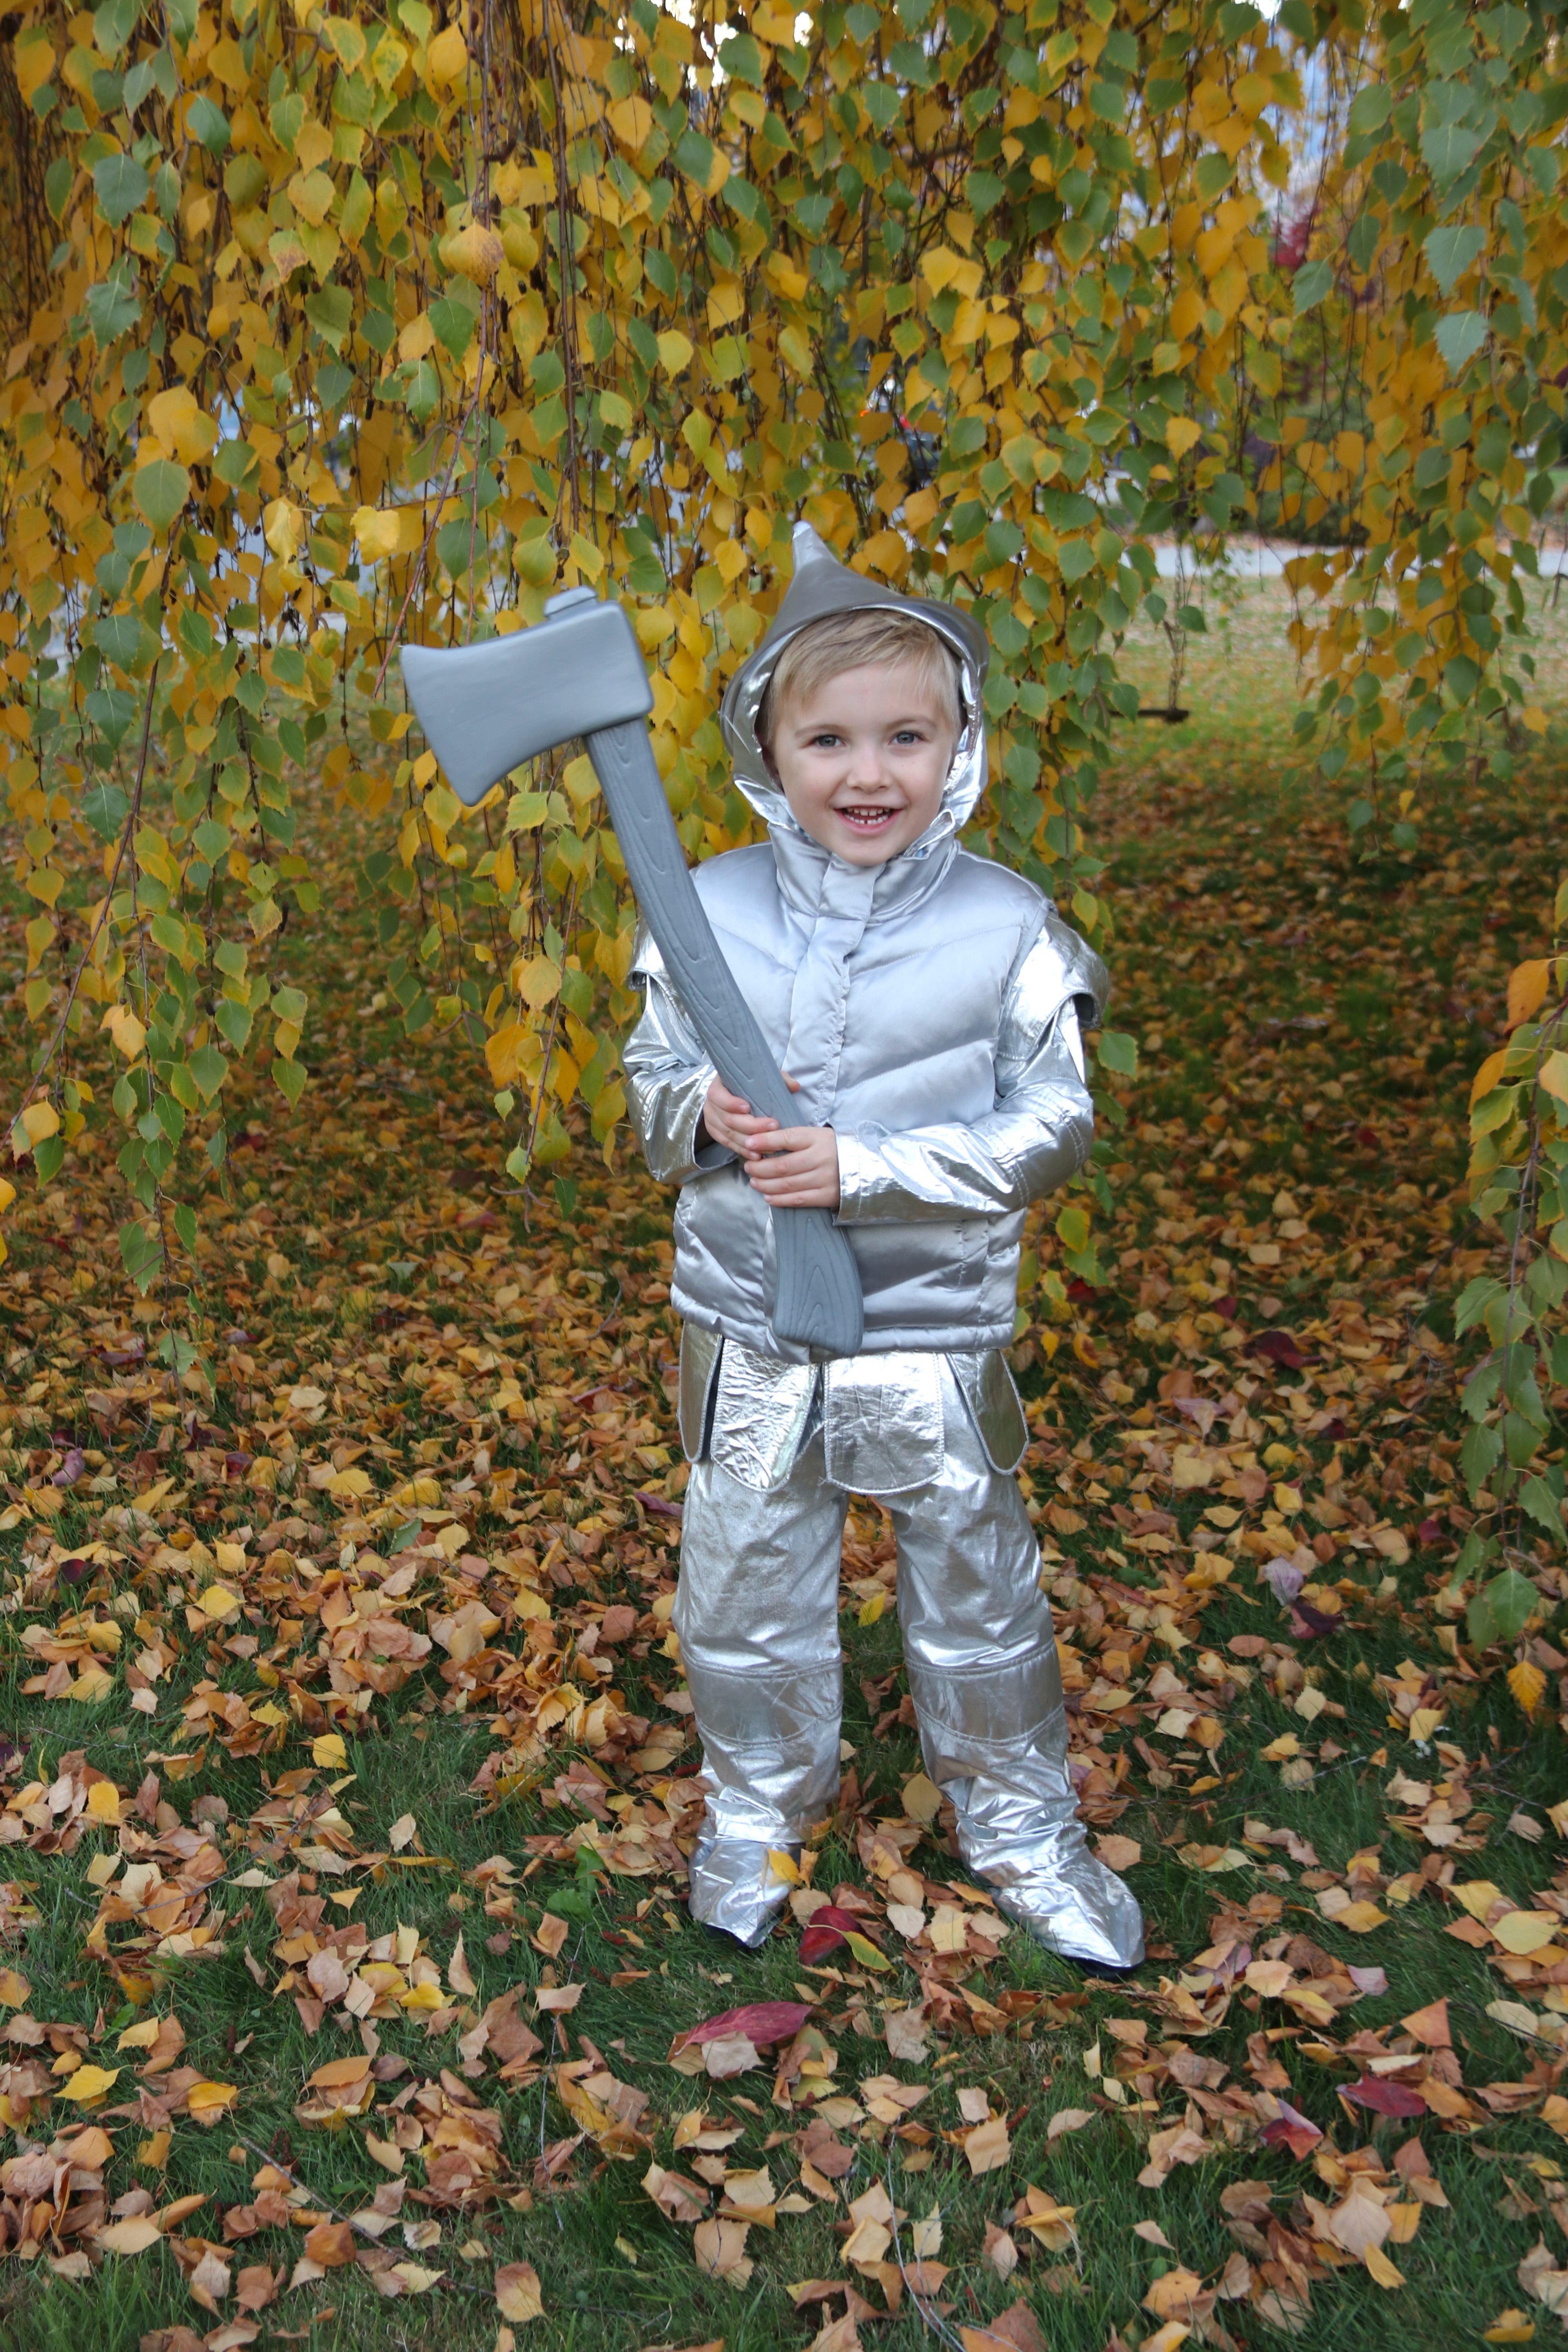 Family wizard of oz costumes diy tin man costume yes you can it made perfect sense that elliott would be the tin man in our wizard of oz crew he is our most passionate and compassionate child solutioingenieria Images